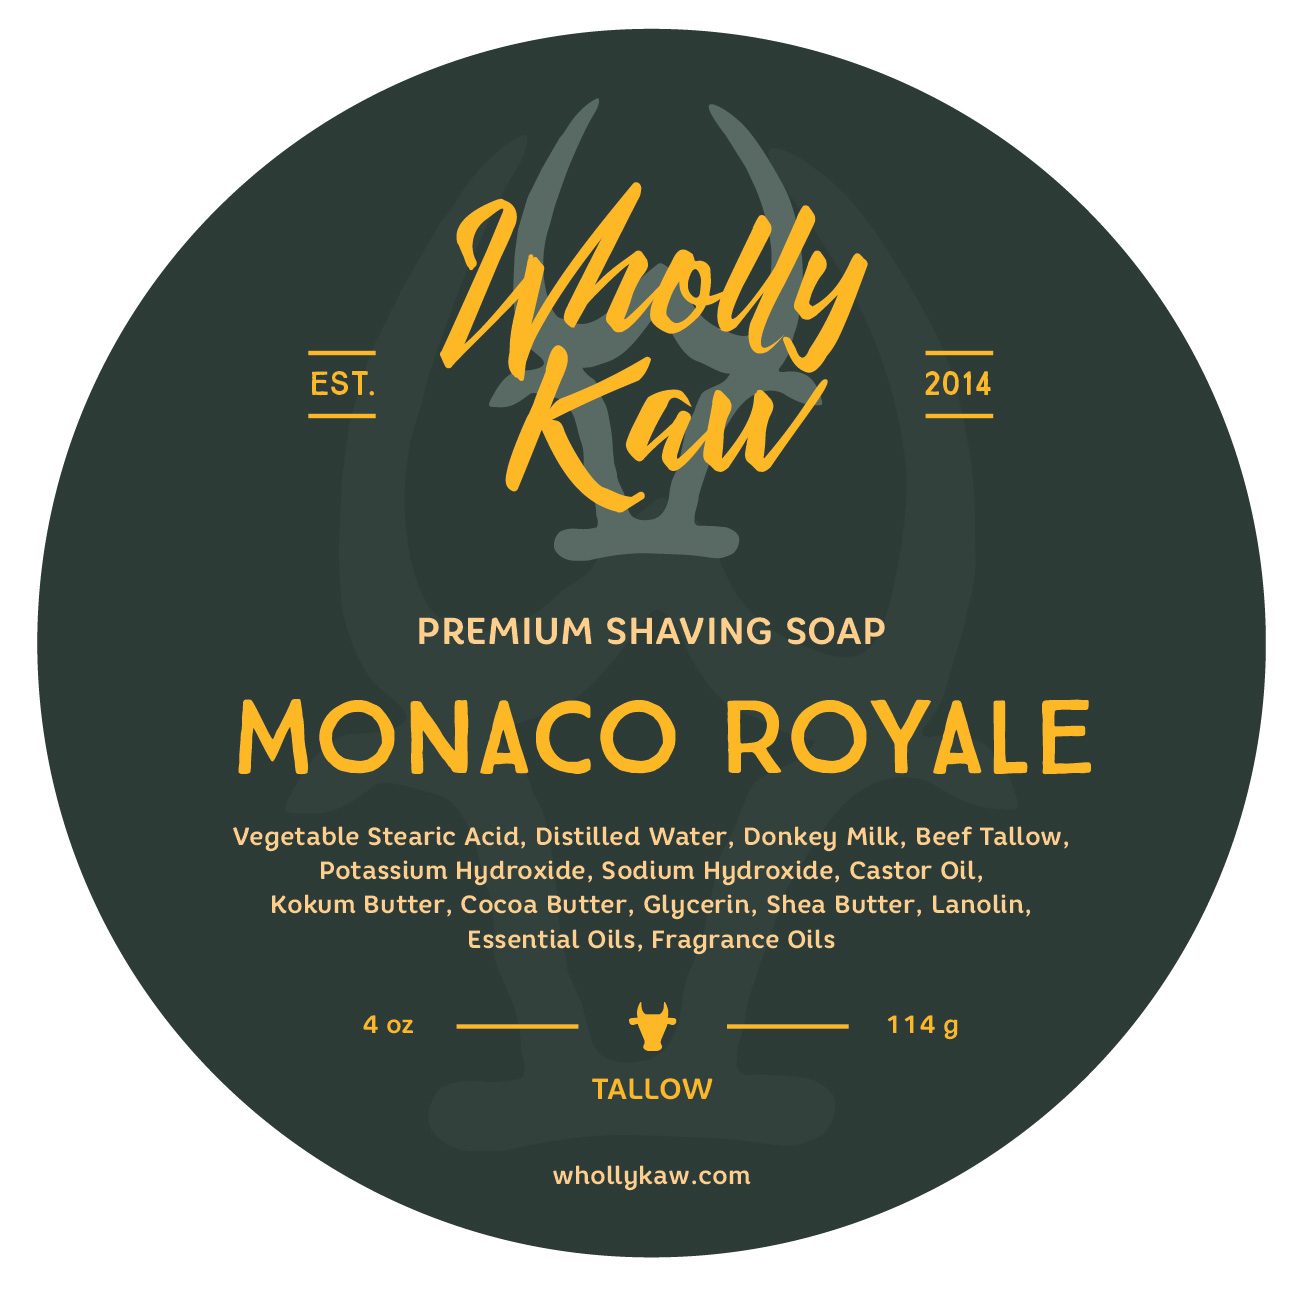 Wholly Kaw - Monaco Royale - Soap image